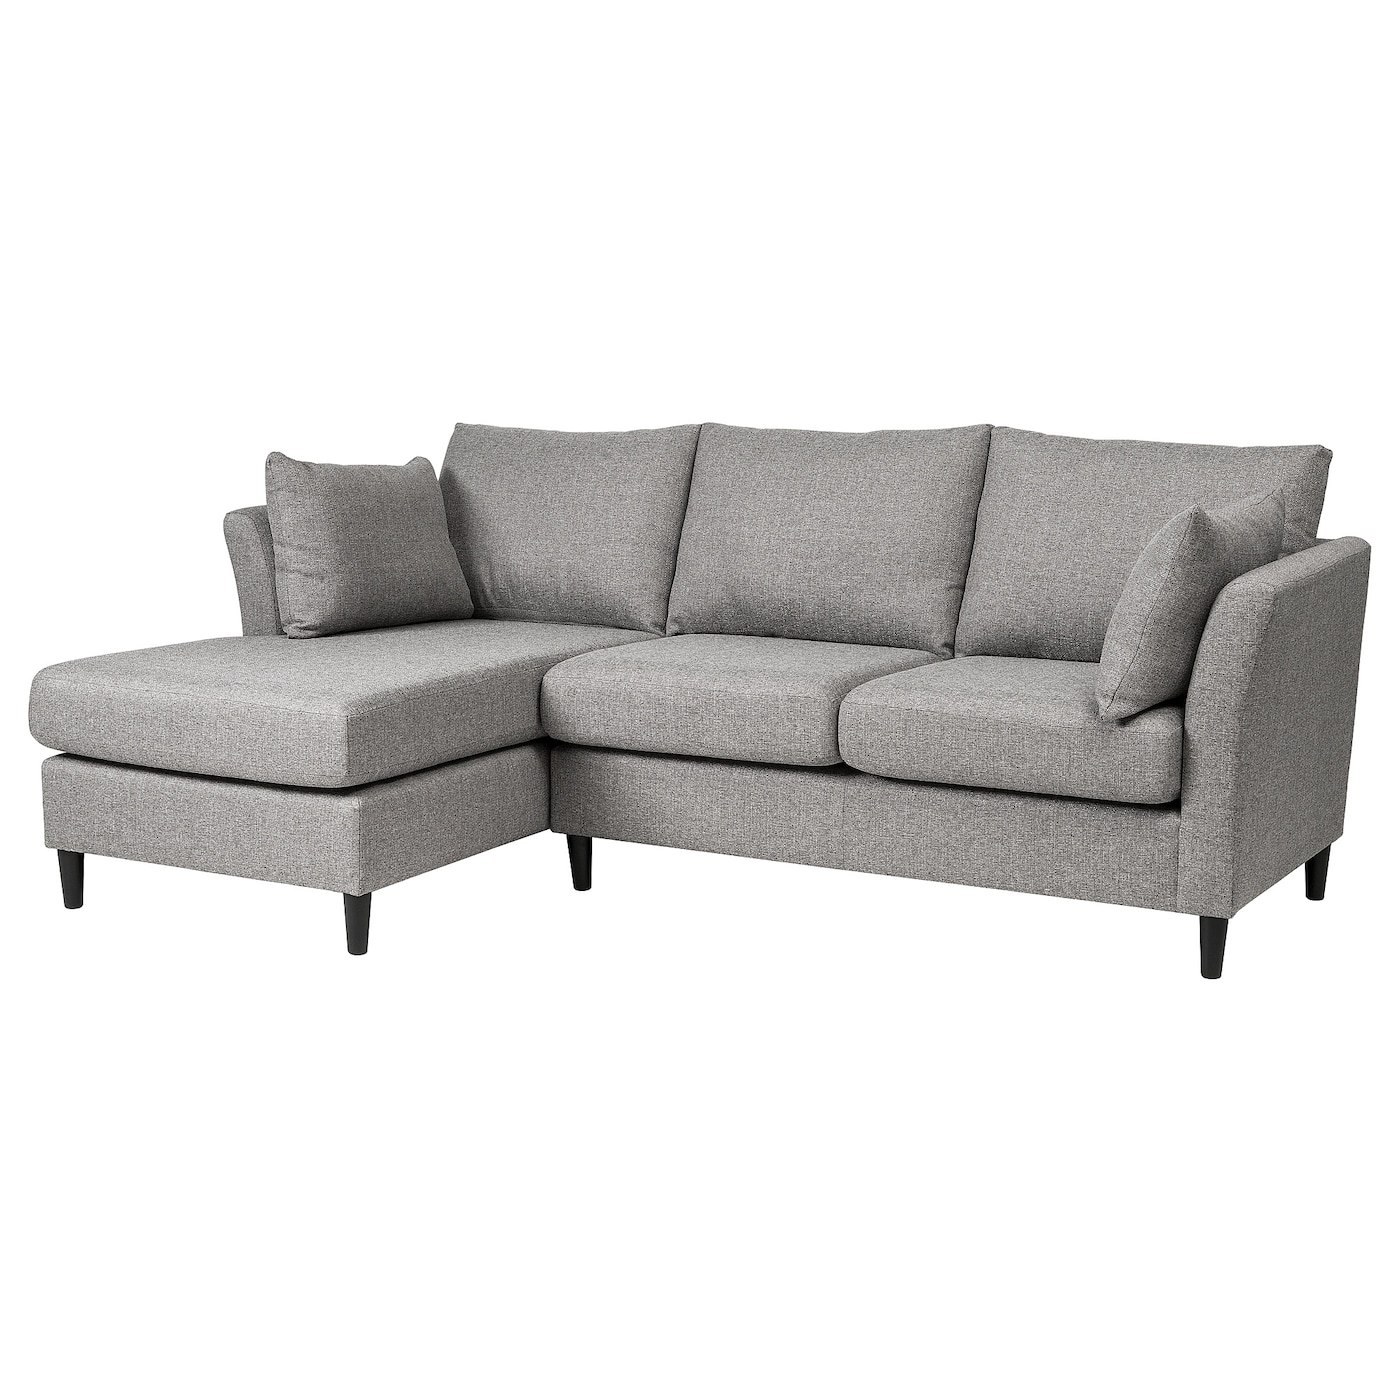 2 seater sofa with chaise sofas 2 3 seater fabric leather for 2 seater sofa with chaise